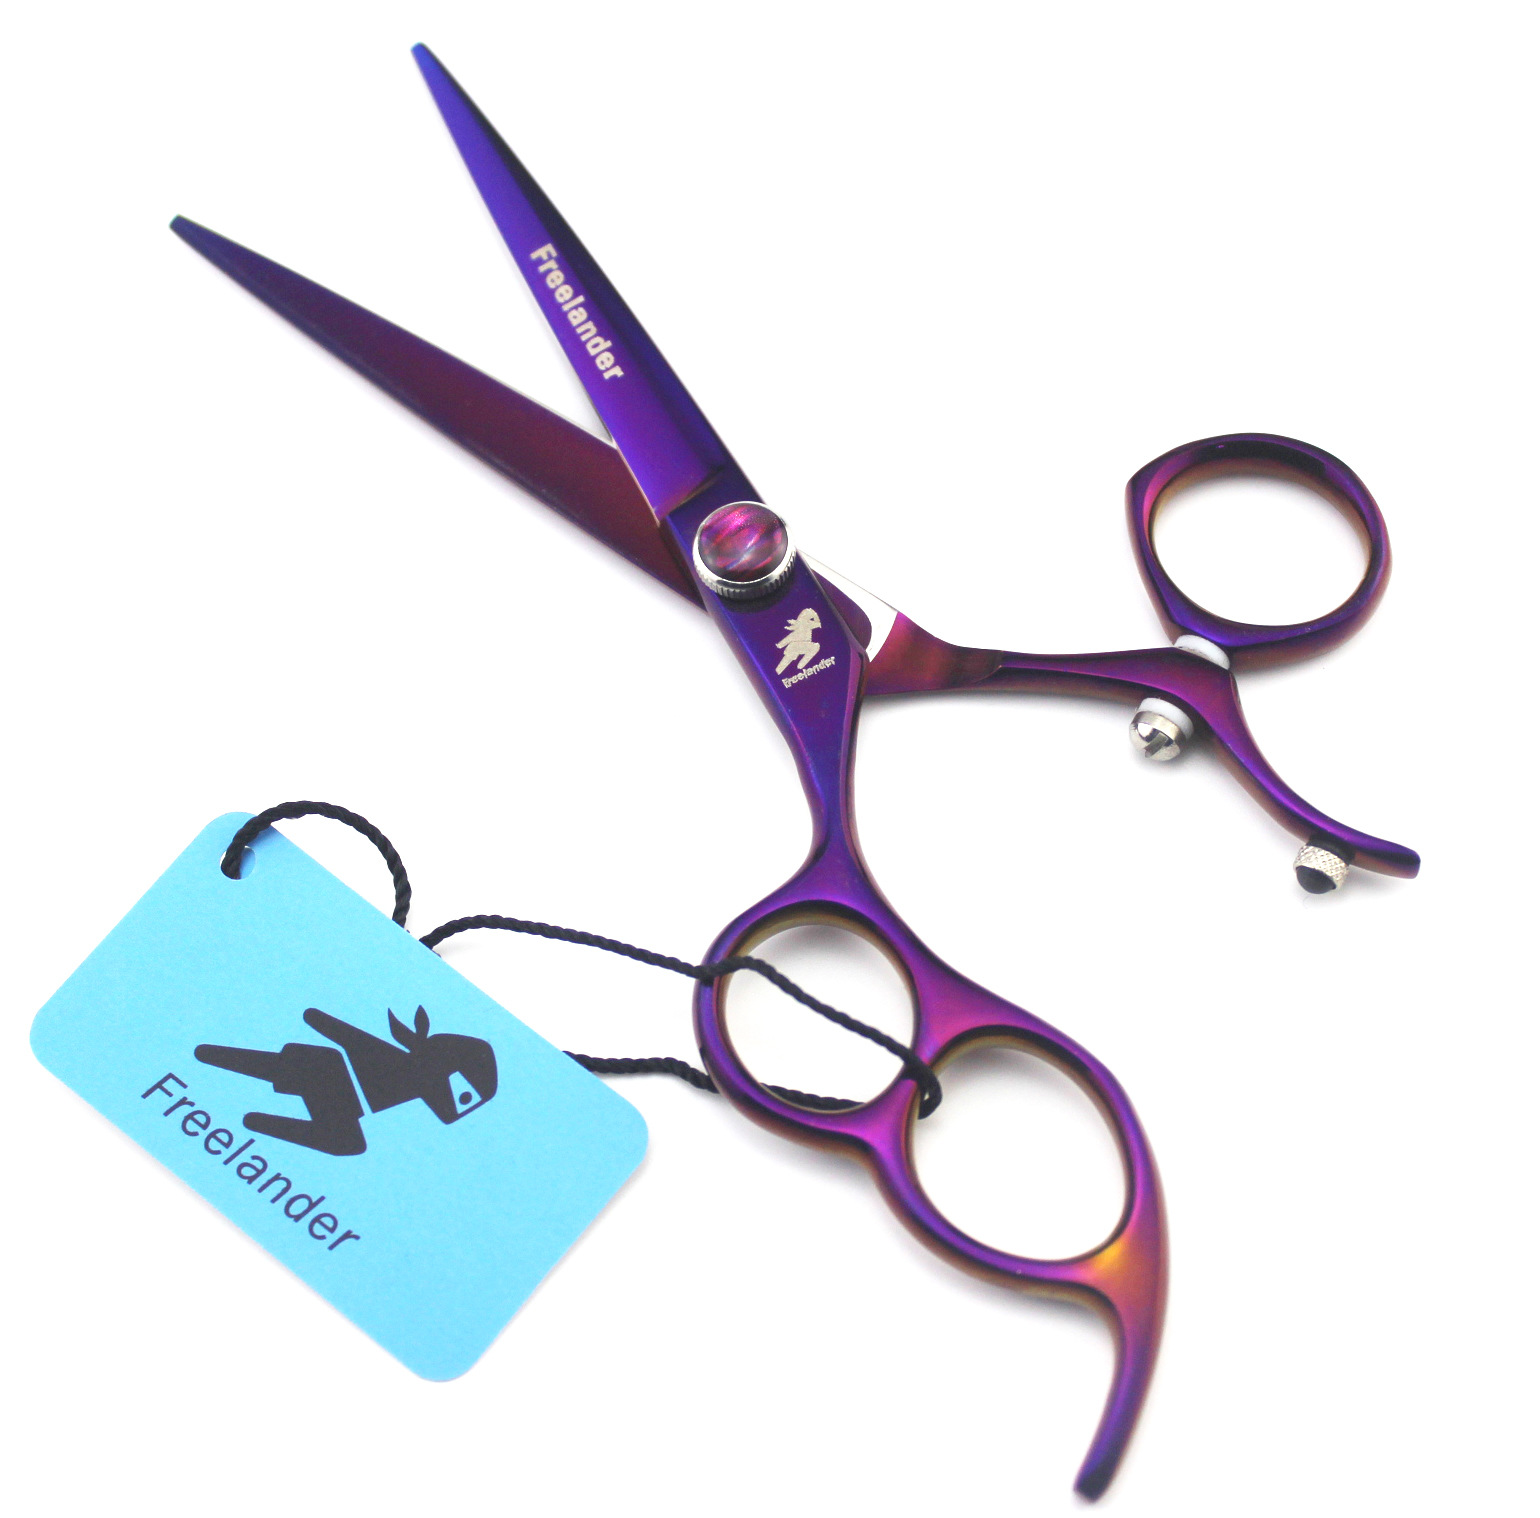 6.0-Inch Stems Freelander Purple Zuo Shou Jian Straight Snips Left-Handed Scissors Send Packet